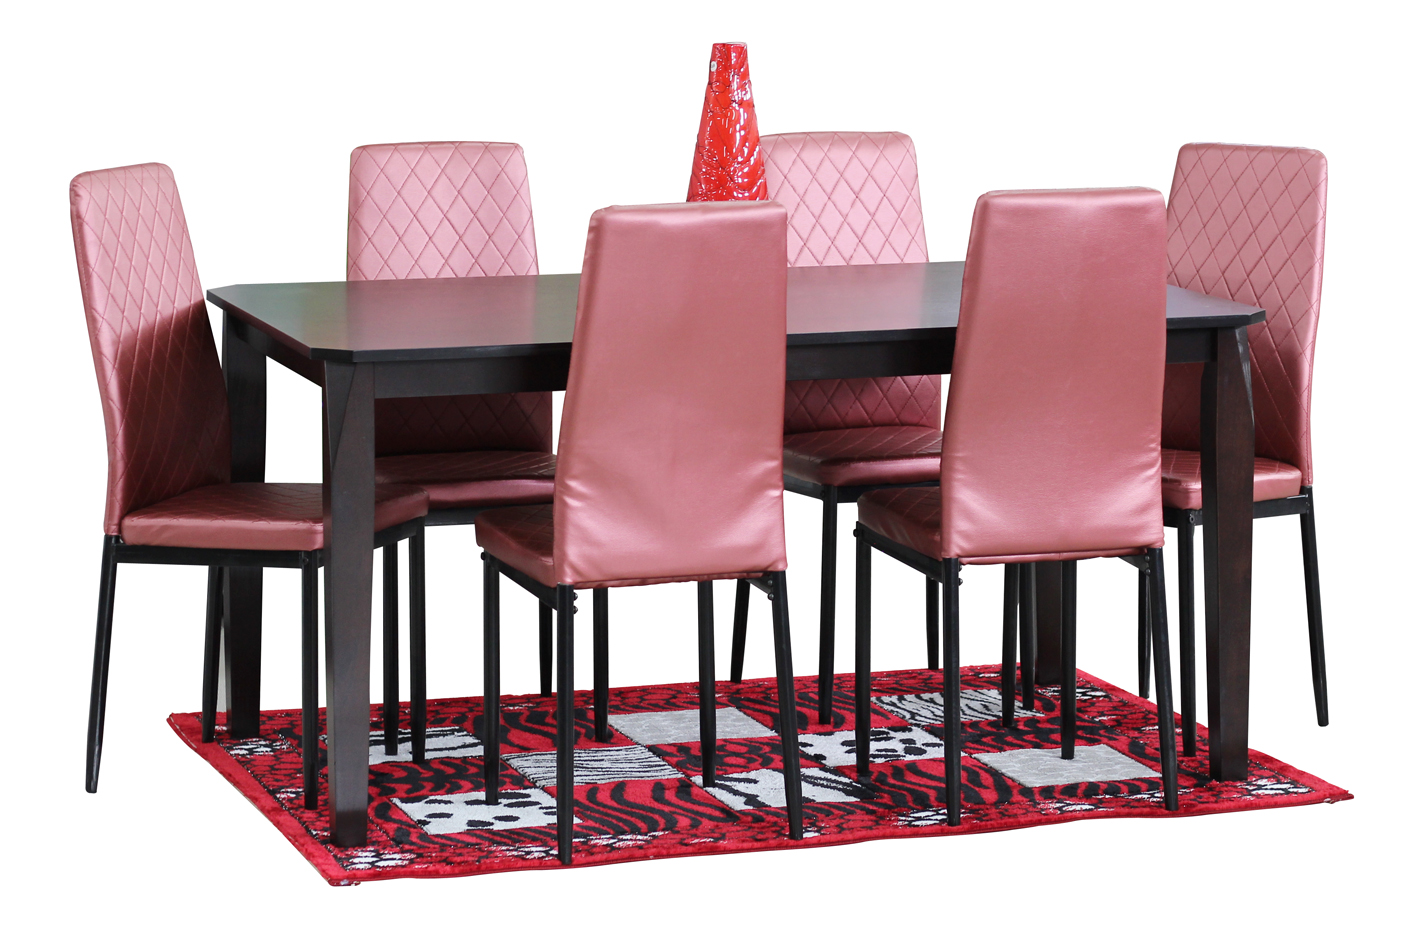 MW-DT14/16 Dining Set Combination Image